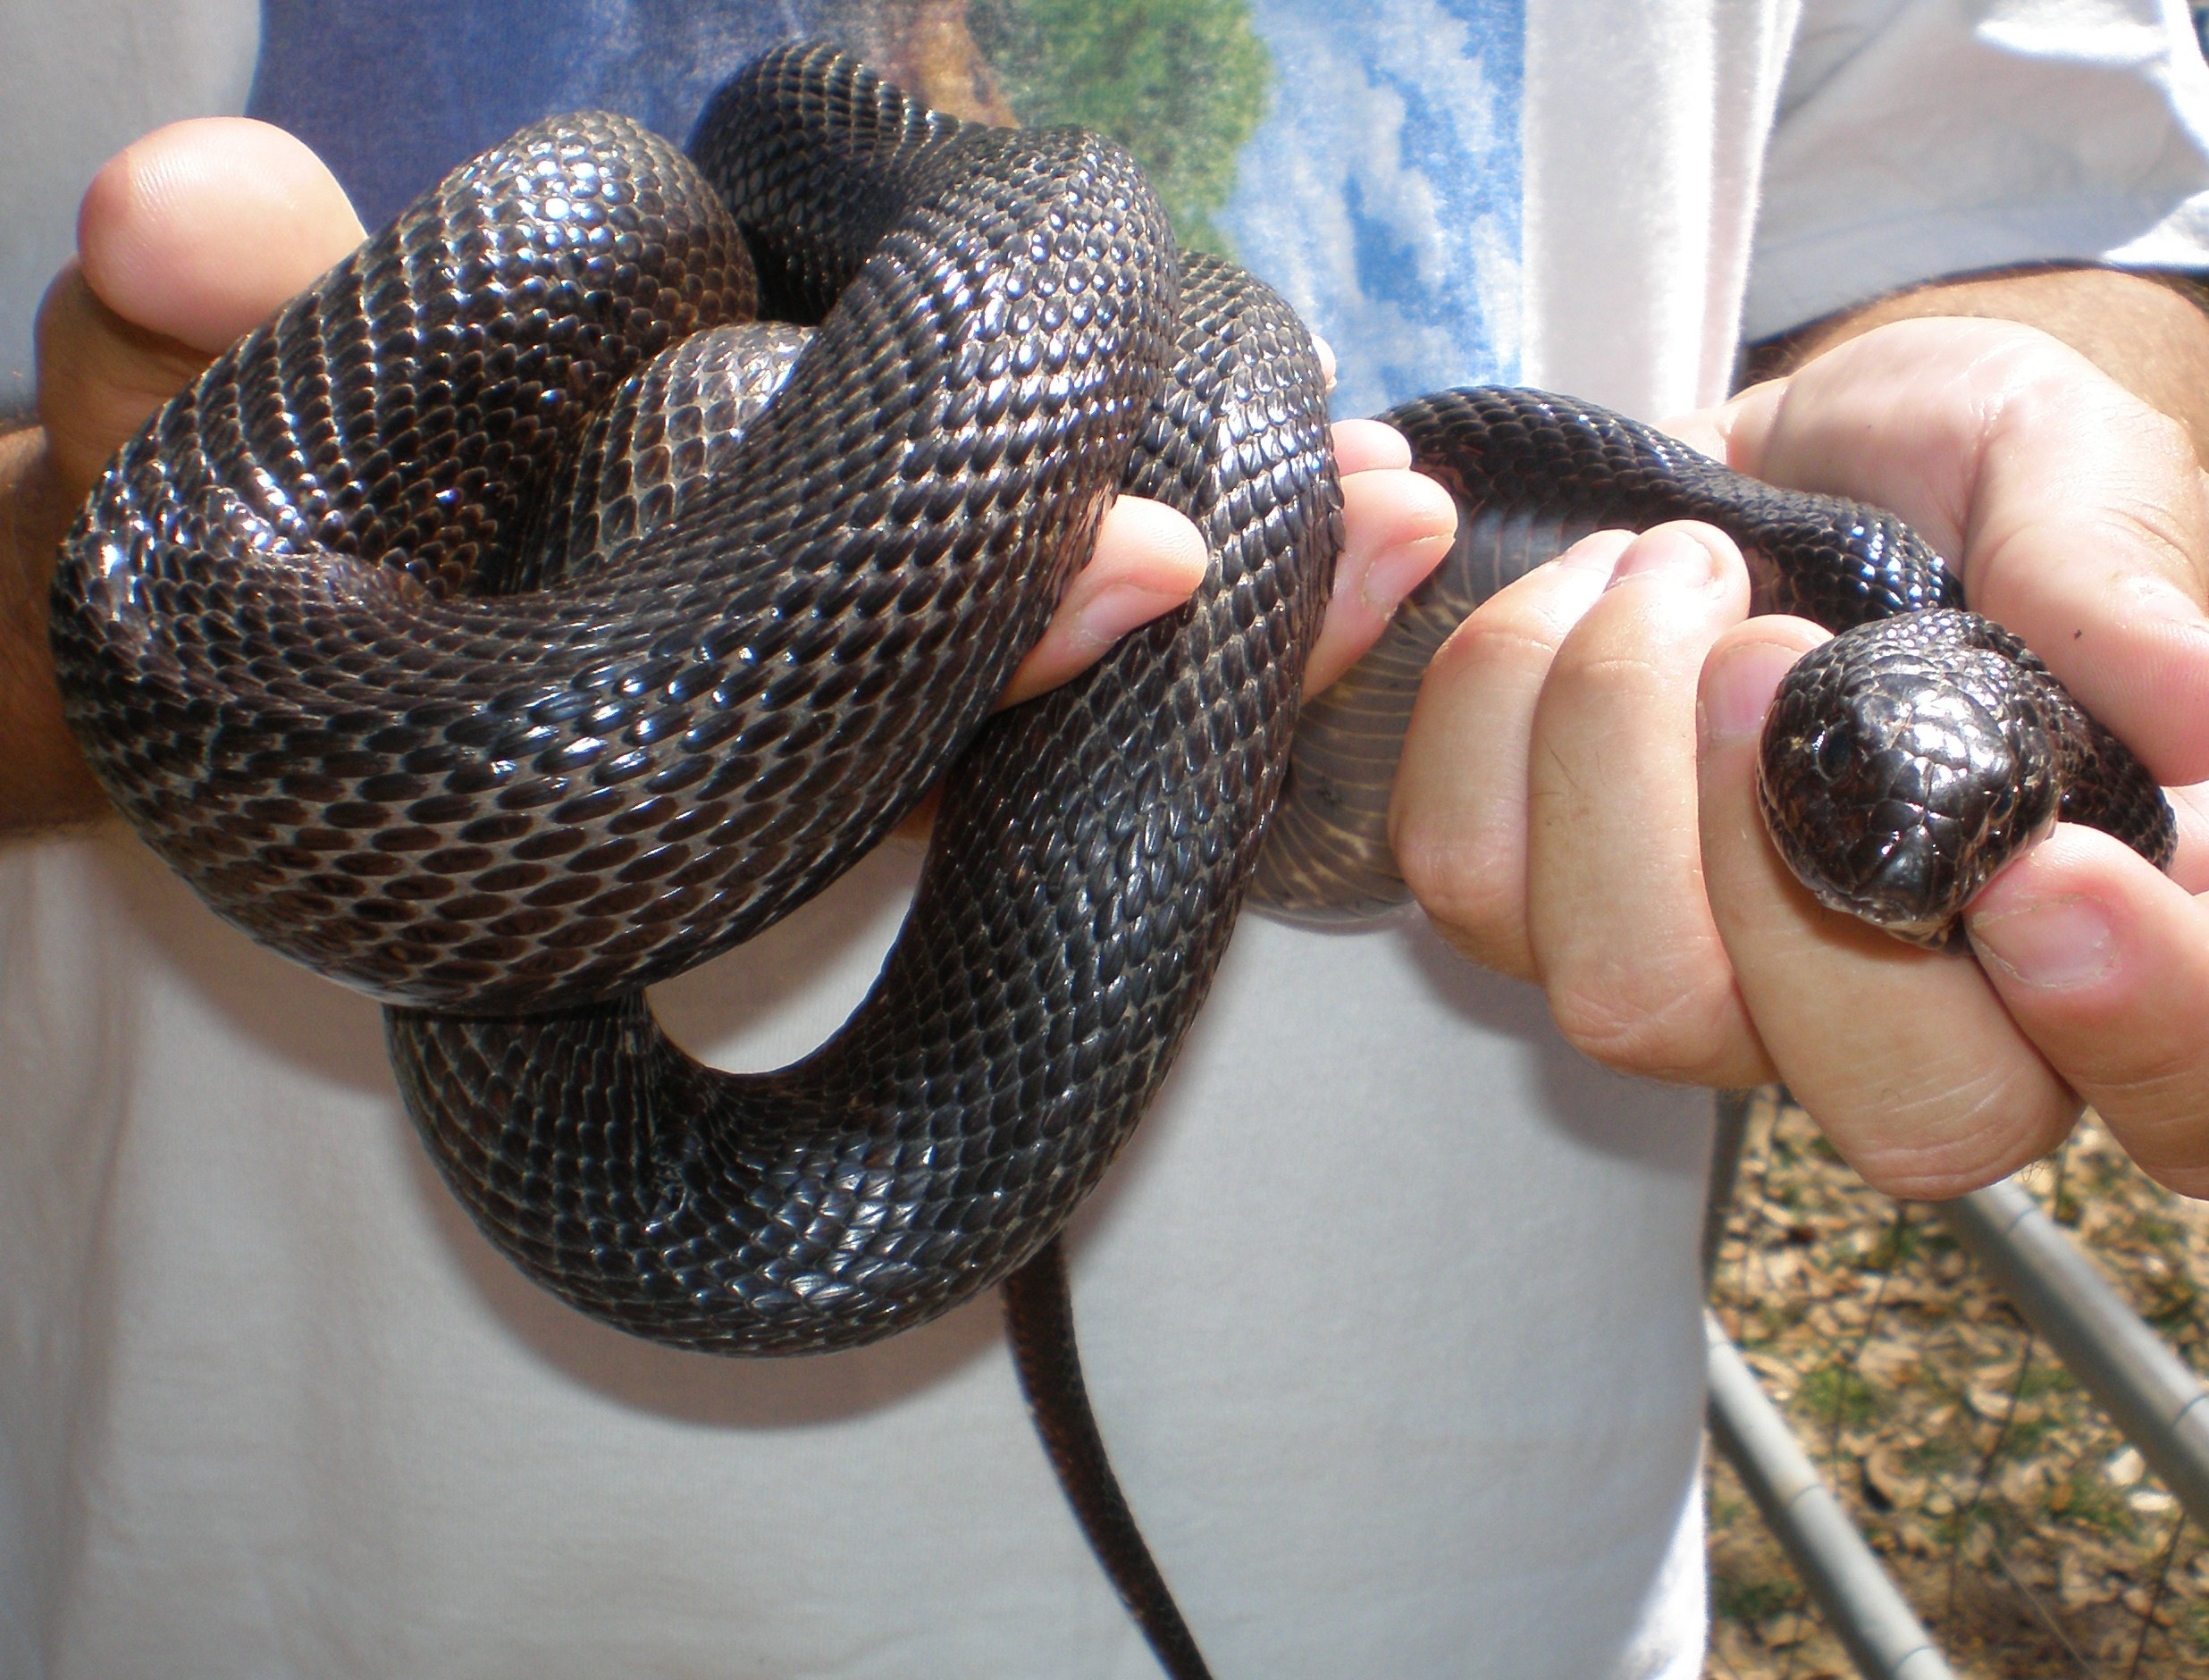 Black And Yellow Snakes In Alabama